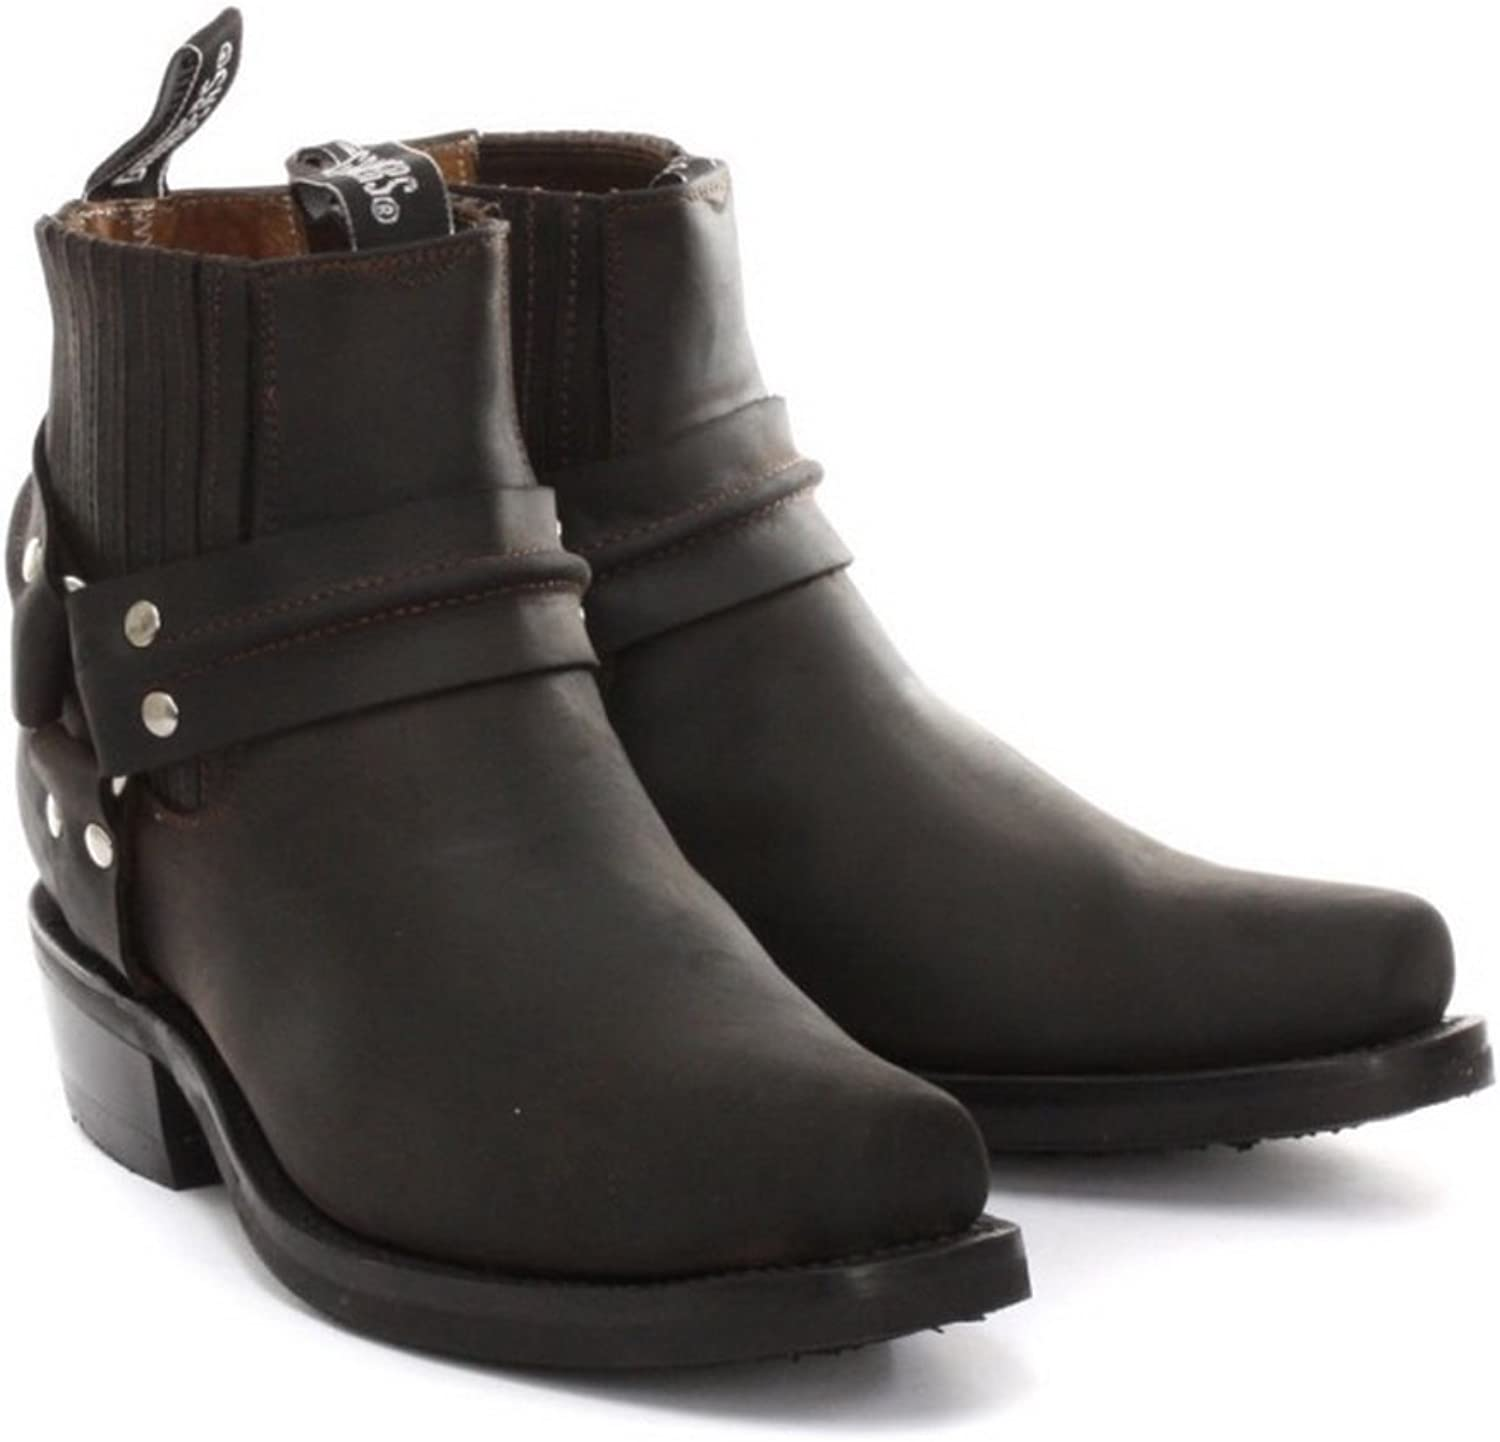 Grinders New Renegade Ankle Brown Riding Cowboy Boots with Three Way Ankle Strap Design